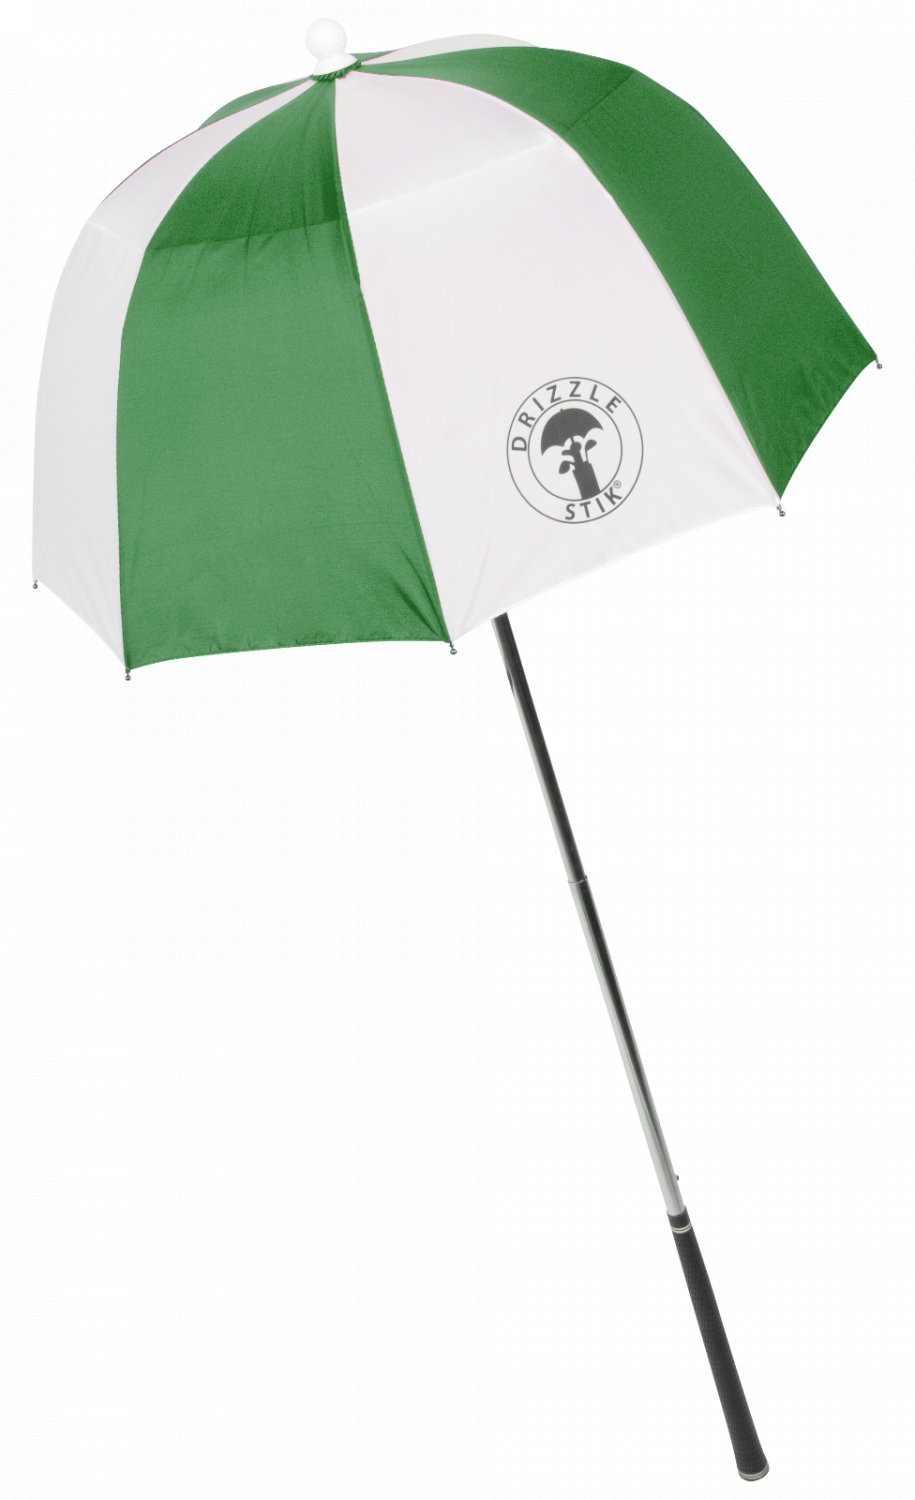 Drizzle Stik Flex Golf Gear Bag Umbrella - Green